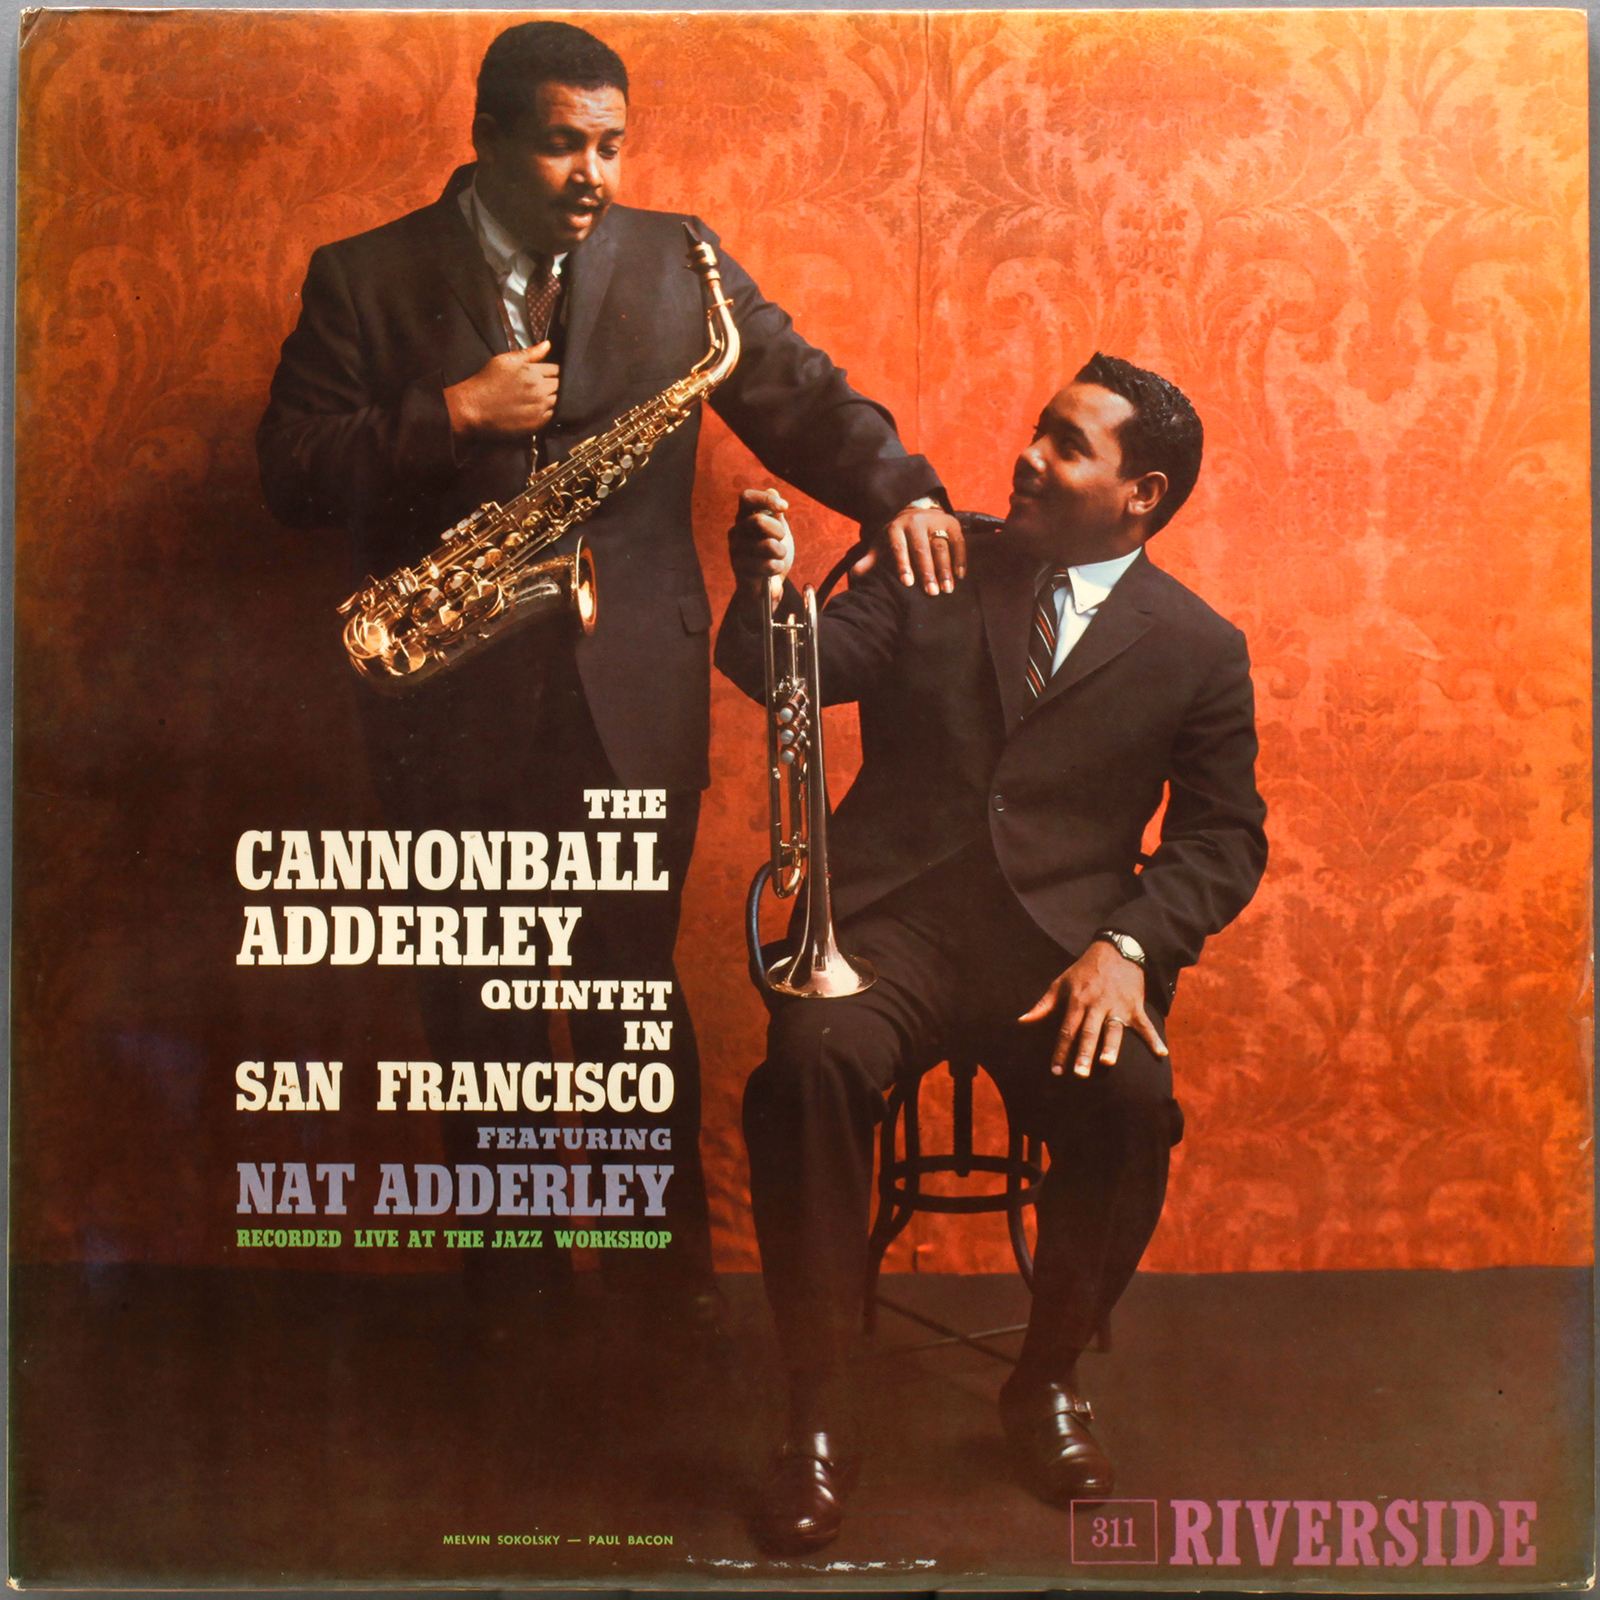 The Cannonball Adderley Quintet Plus